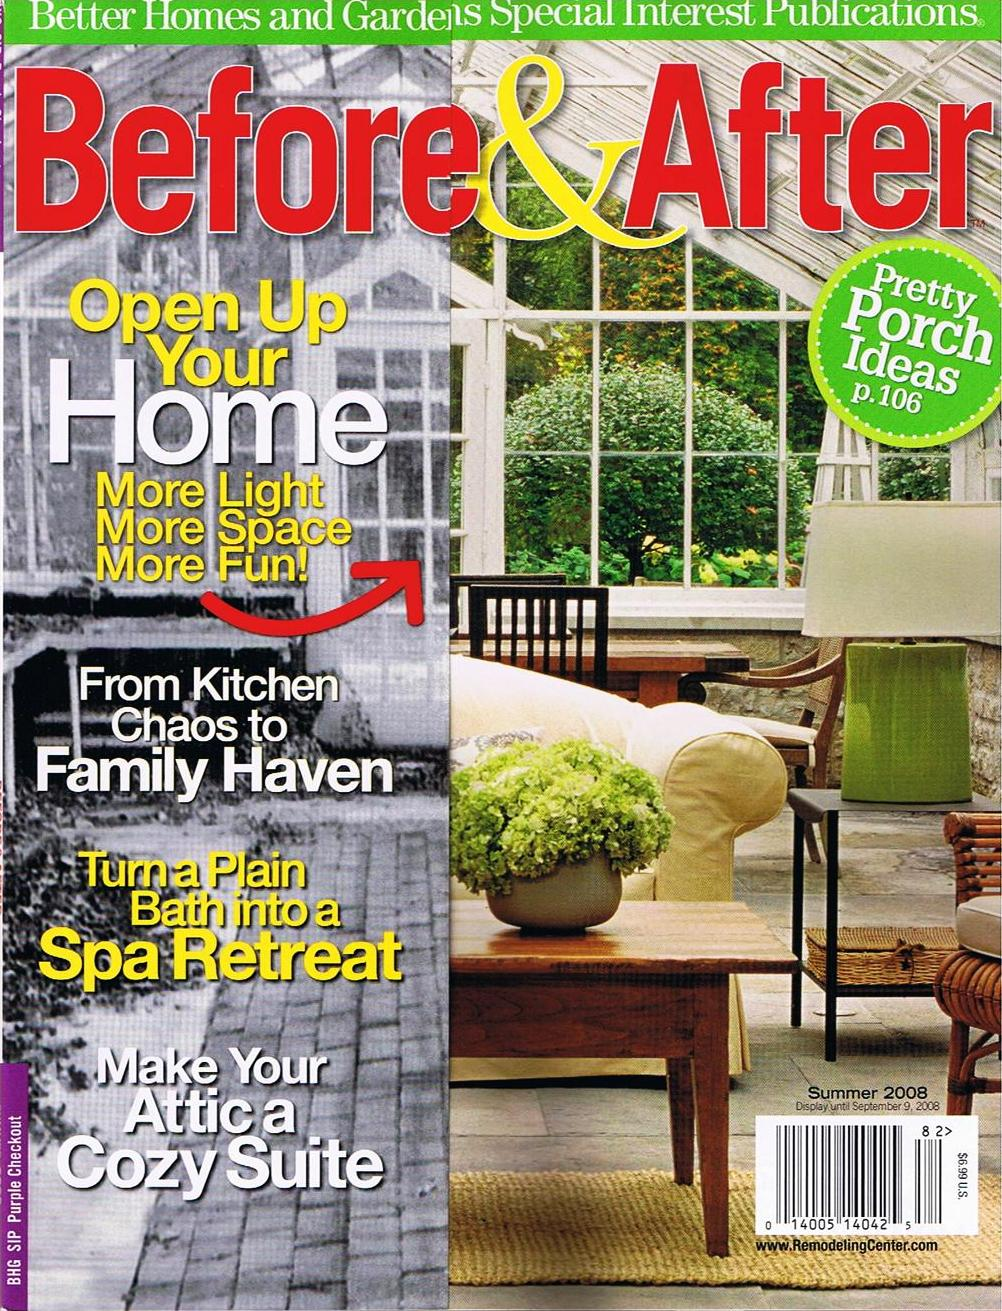 Better Homes And Gardens Publications Home Decorations Idea